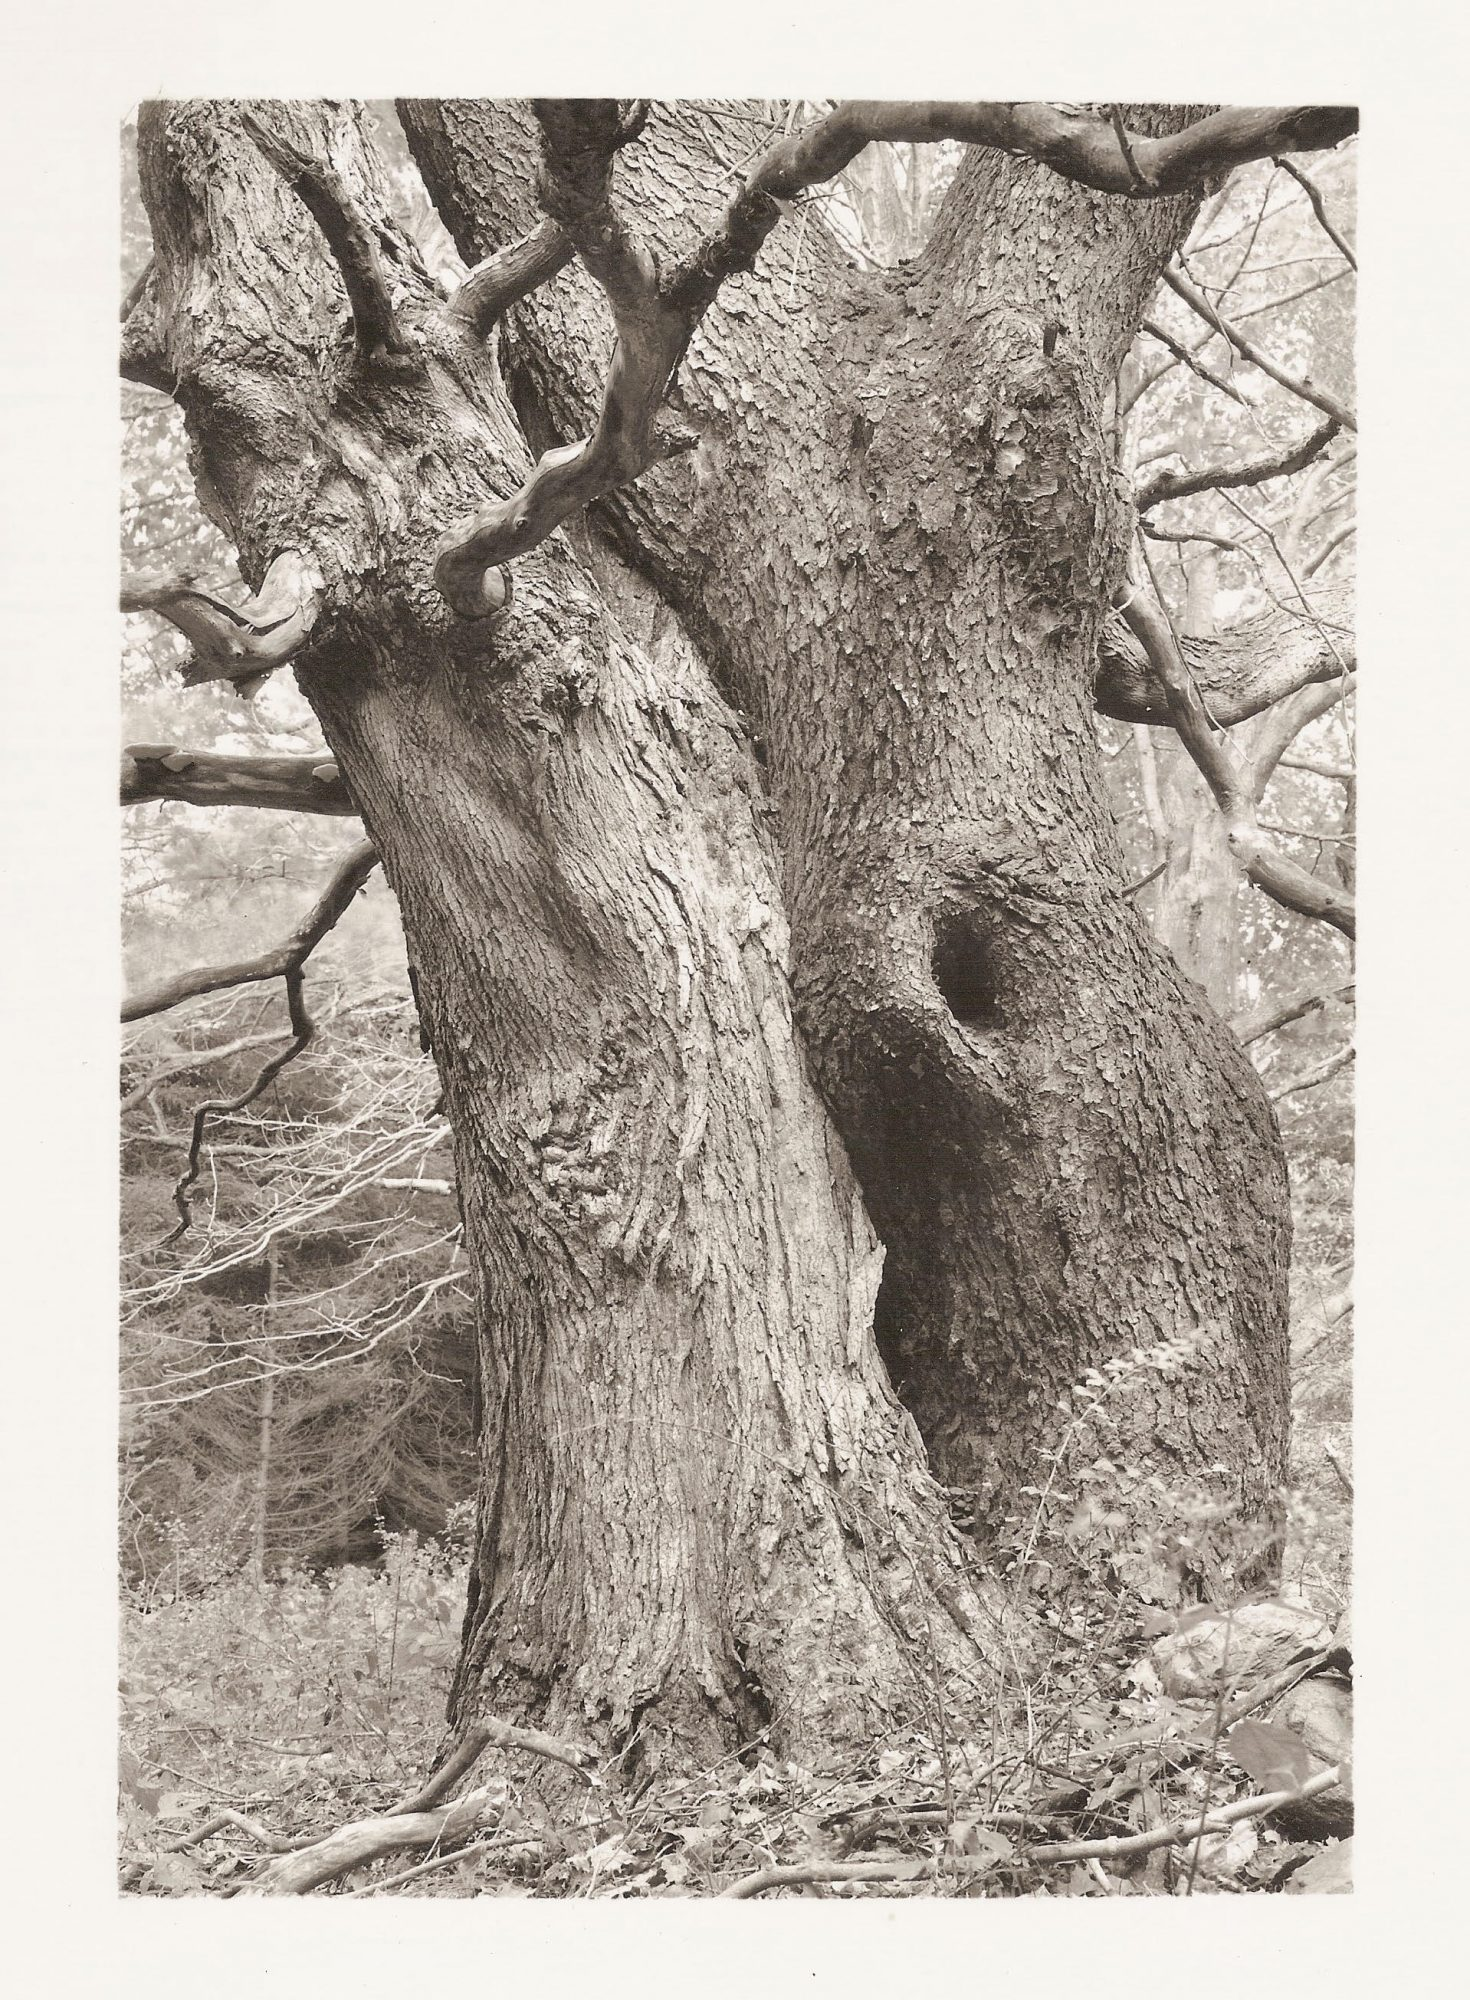 Portraits of American Trees: The Photography of Tom Zetterstrom